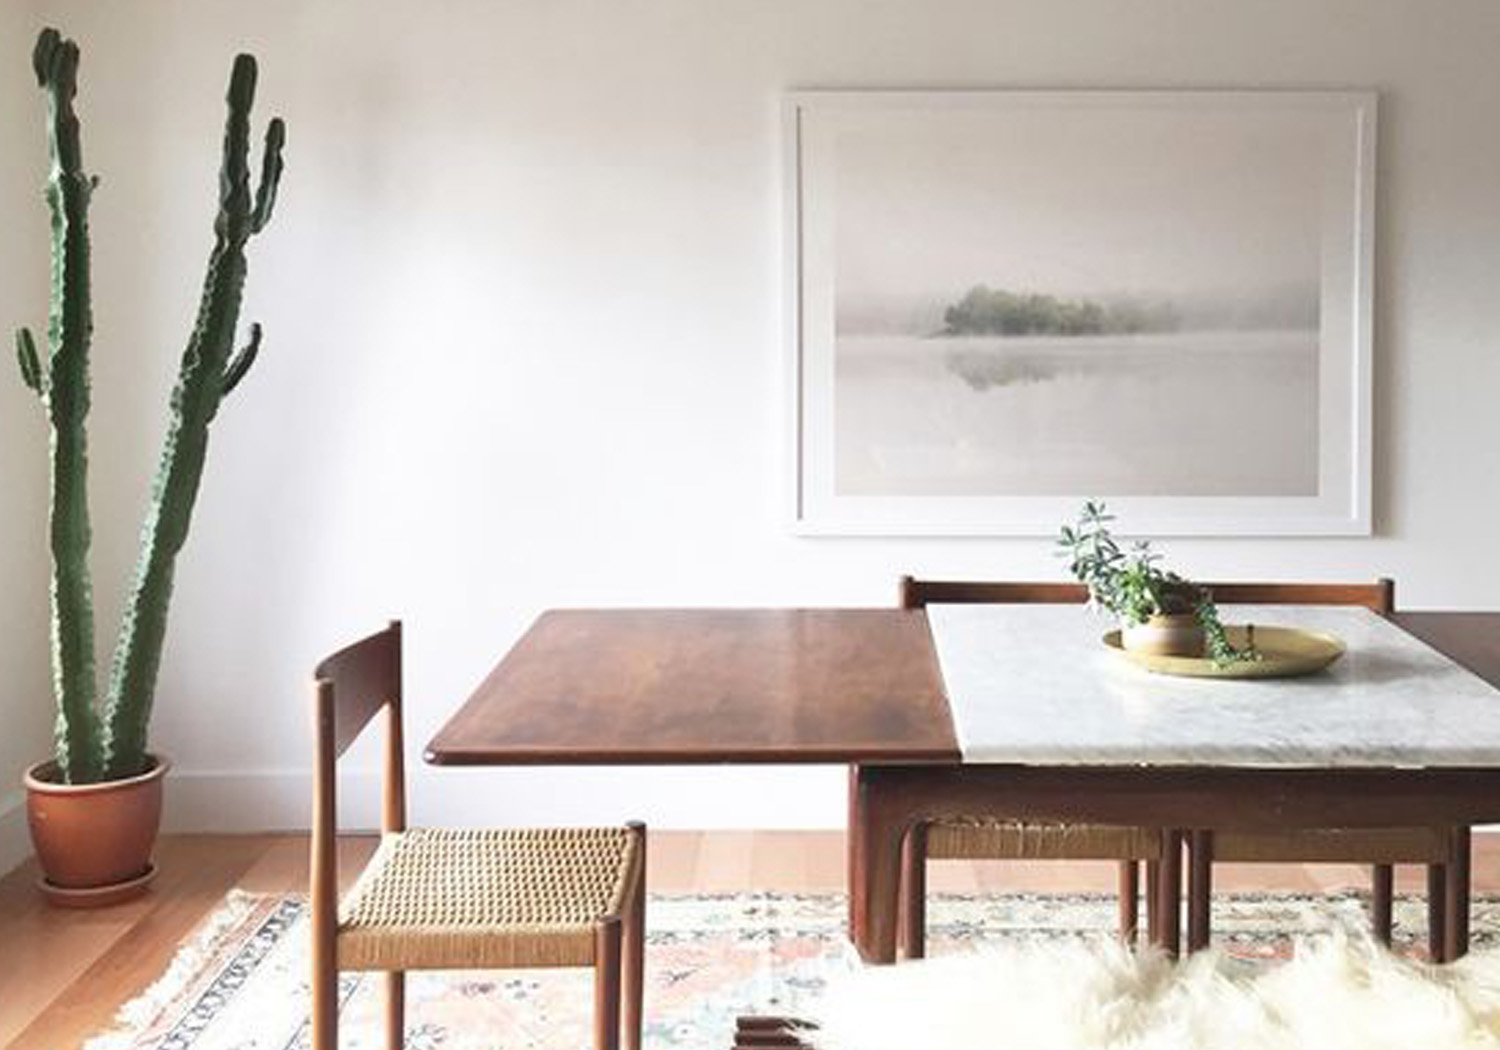 Well + Good - Wellness experts Well + Good ask Interior Designer Kerry Vasquez to weigh in on why hiring an Interior Designer is worth it. Not only can improving your space increase your overall happiness, it can also boost productivity and creativity!